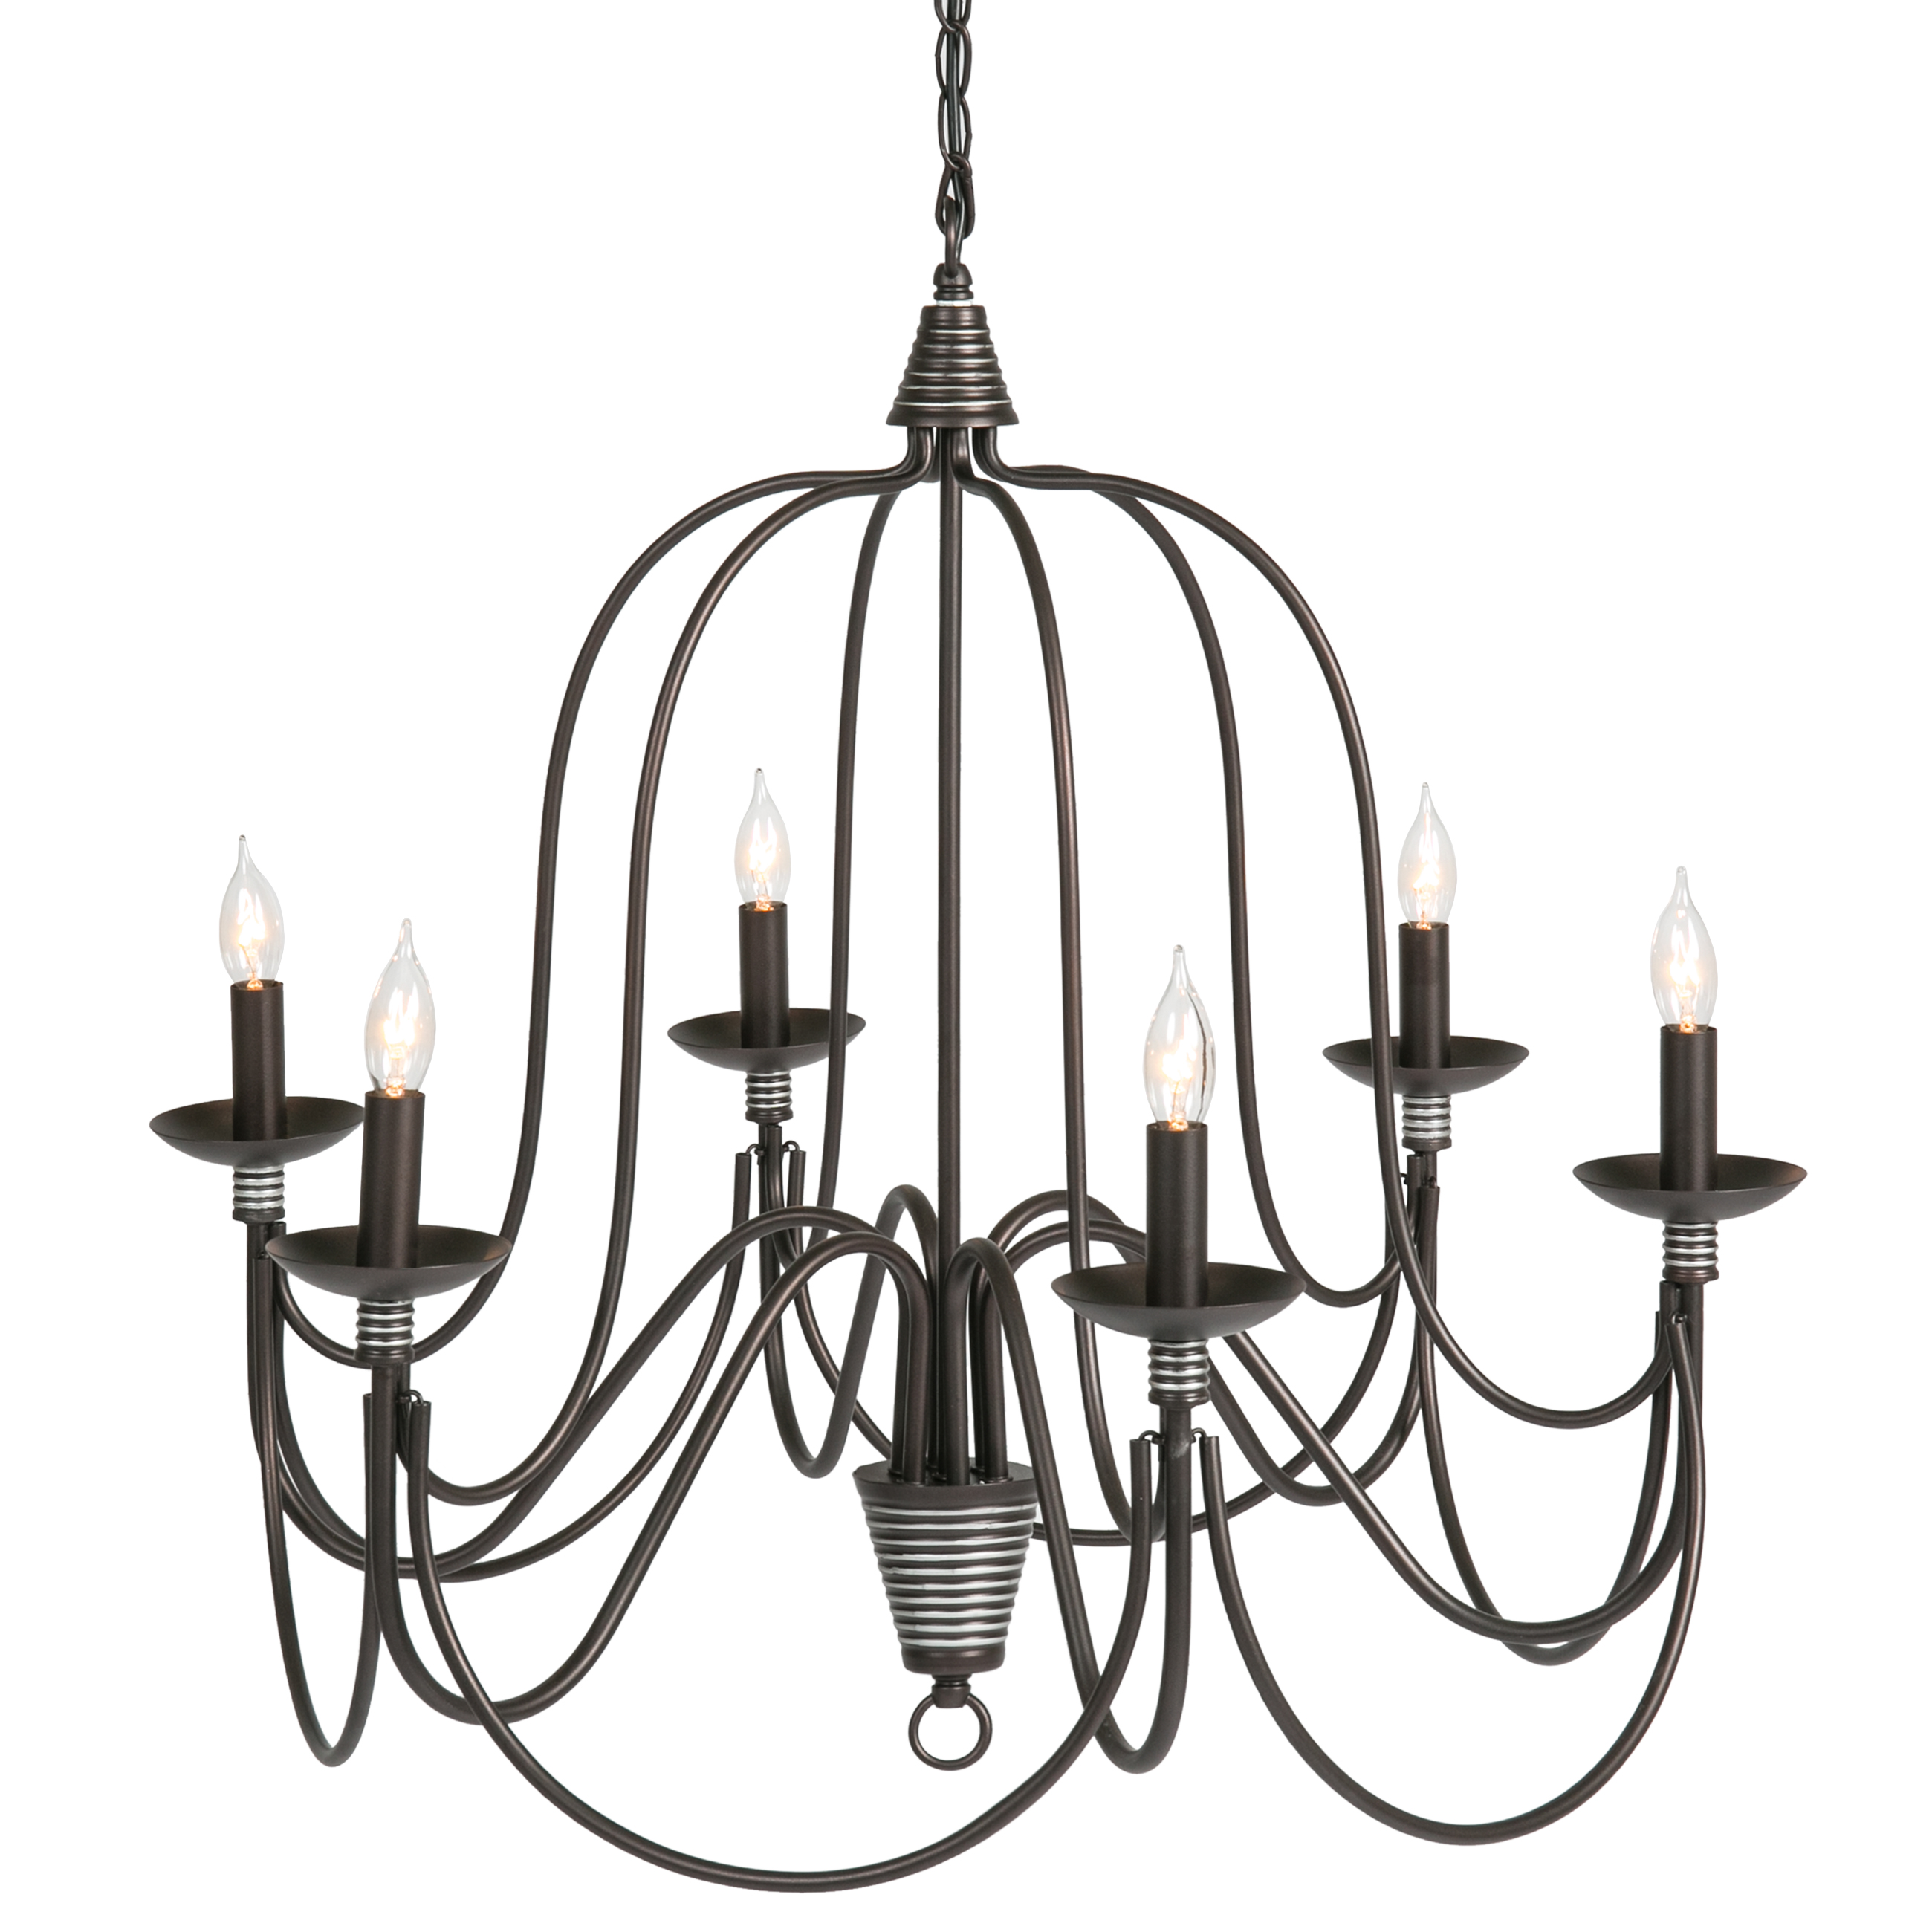 Best Choice Products Home 6-Light Ceiling Candle Chandelier Hanging Fixture W  Bronze Finish by Best Choice Products